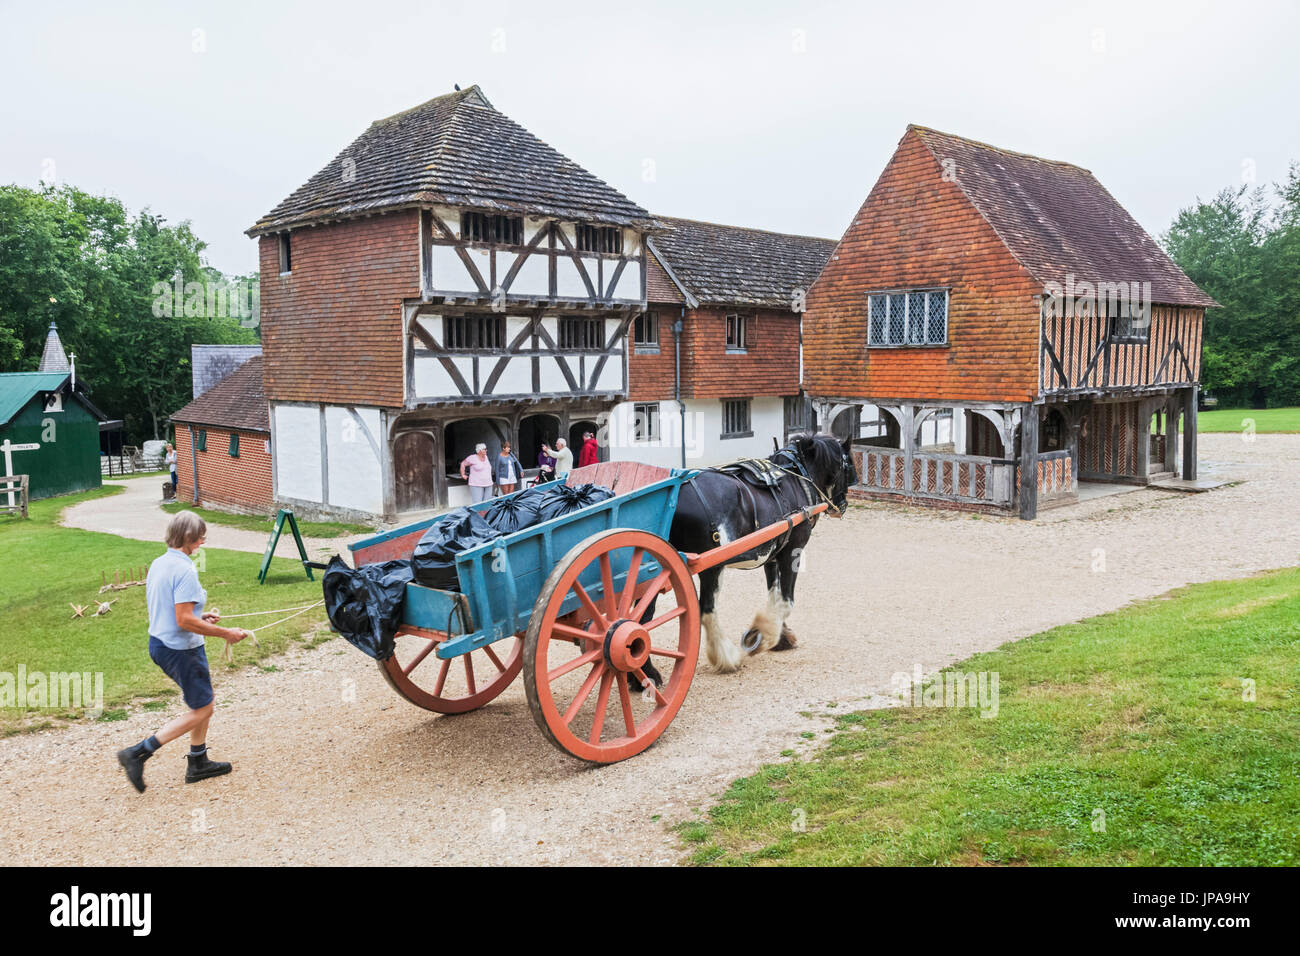 England, West Sussex, Singleton, Weald and Downland Open Air Museum - Stock Image